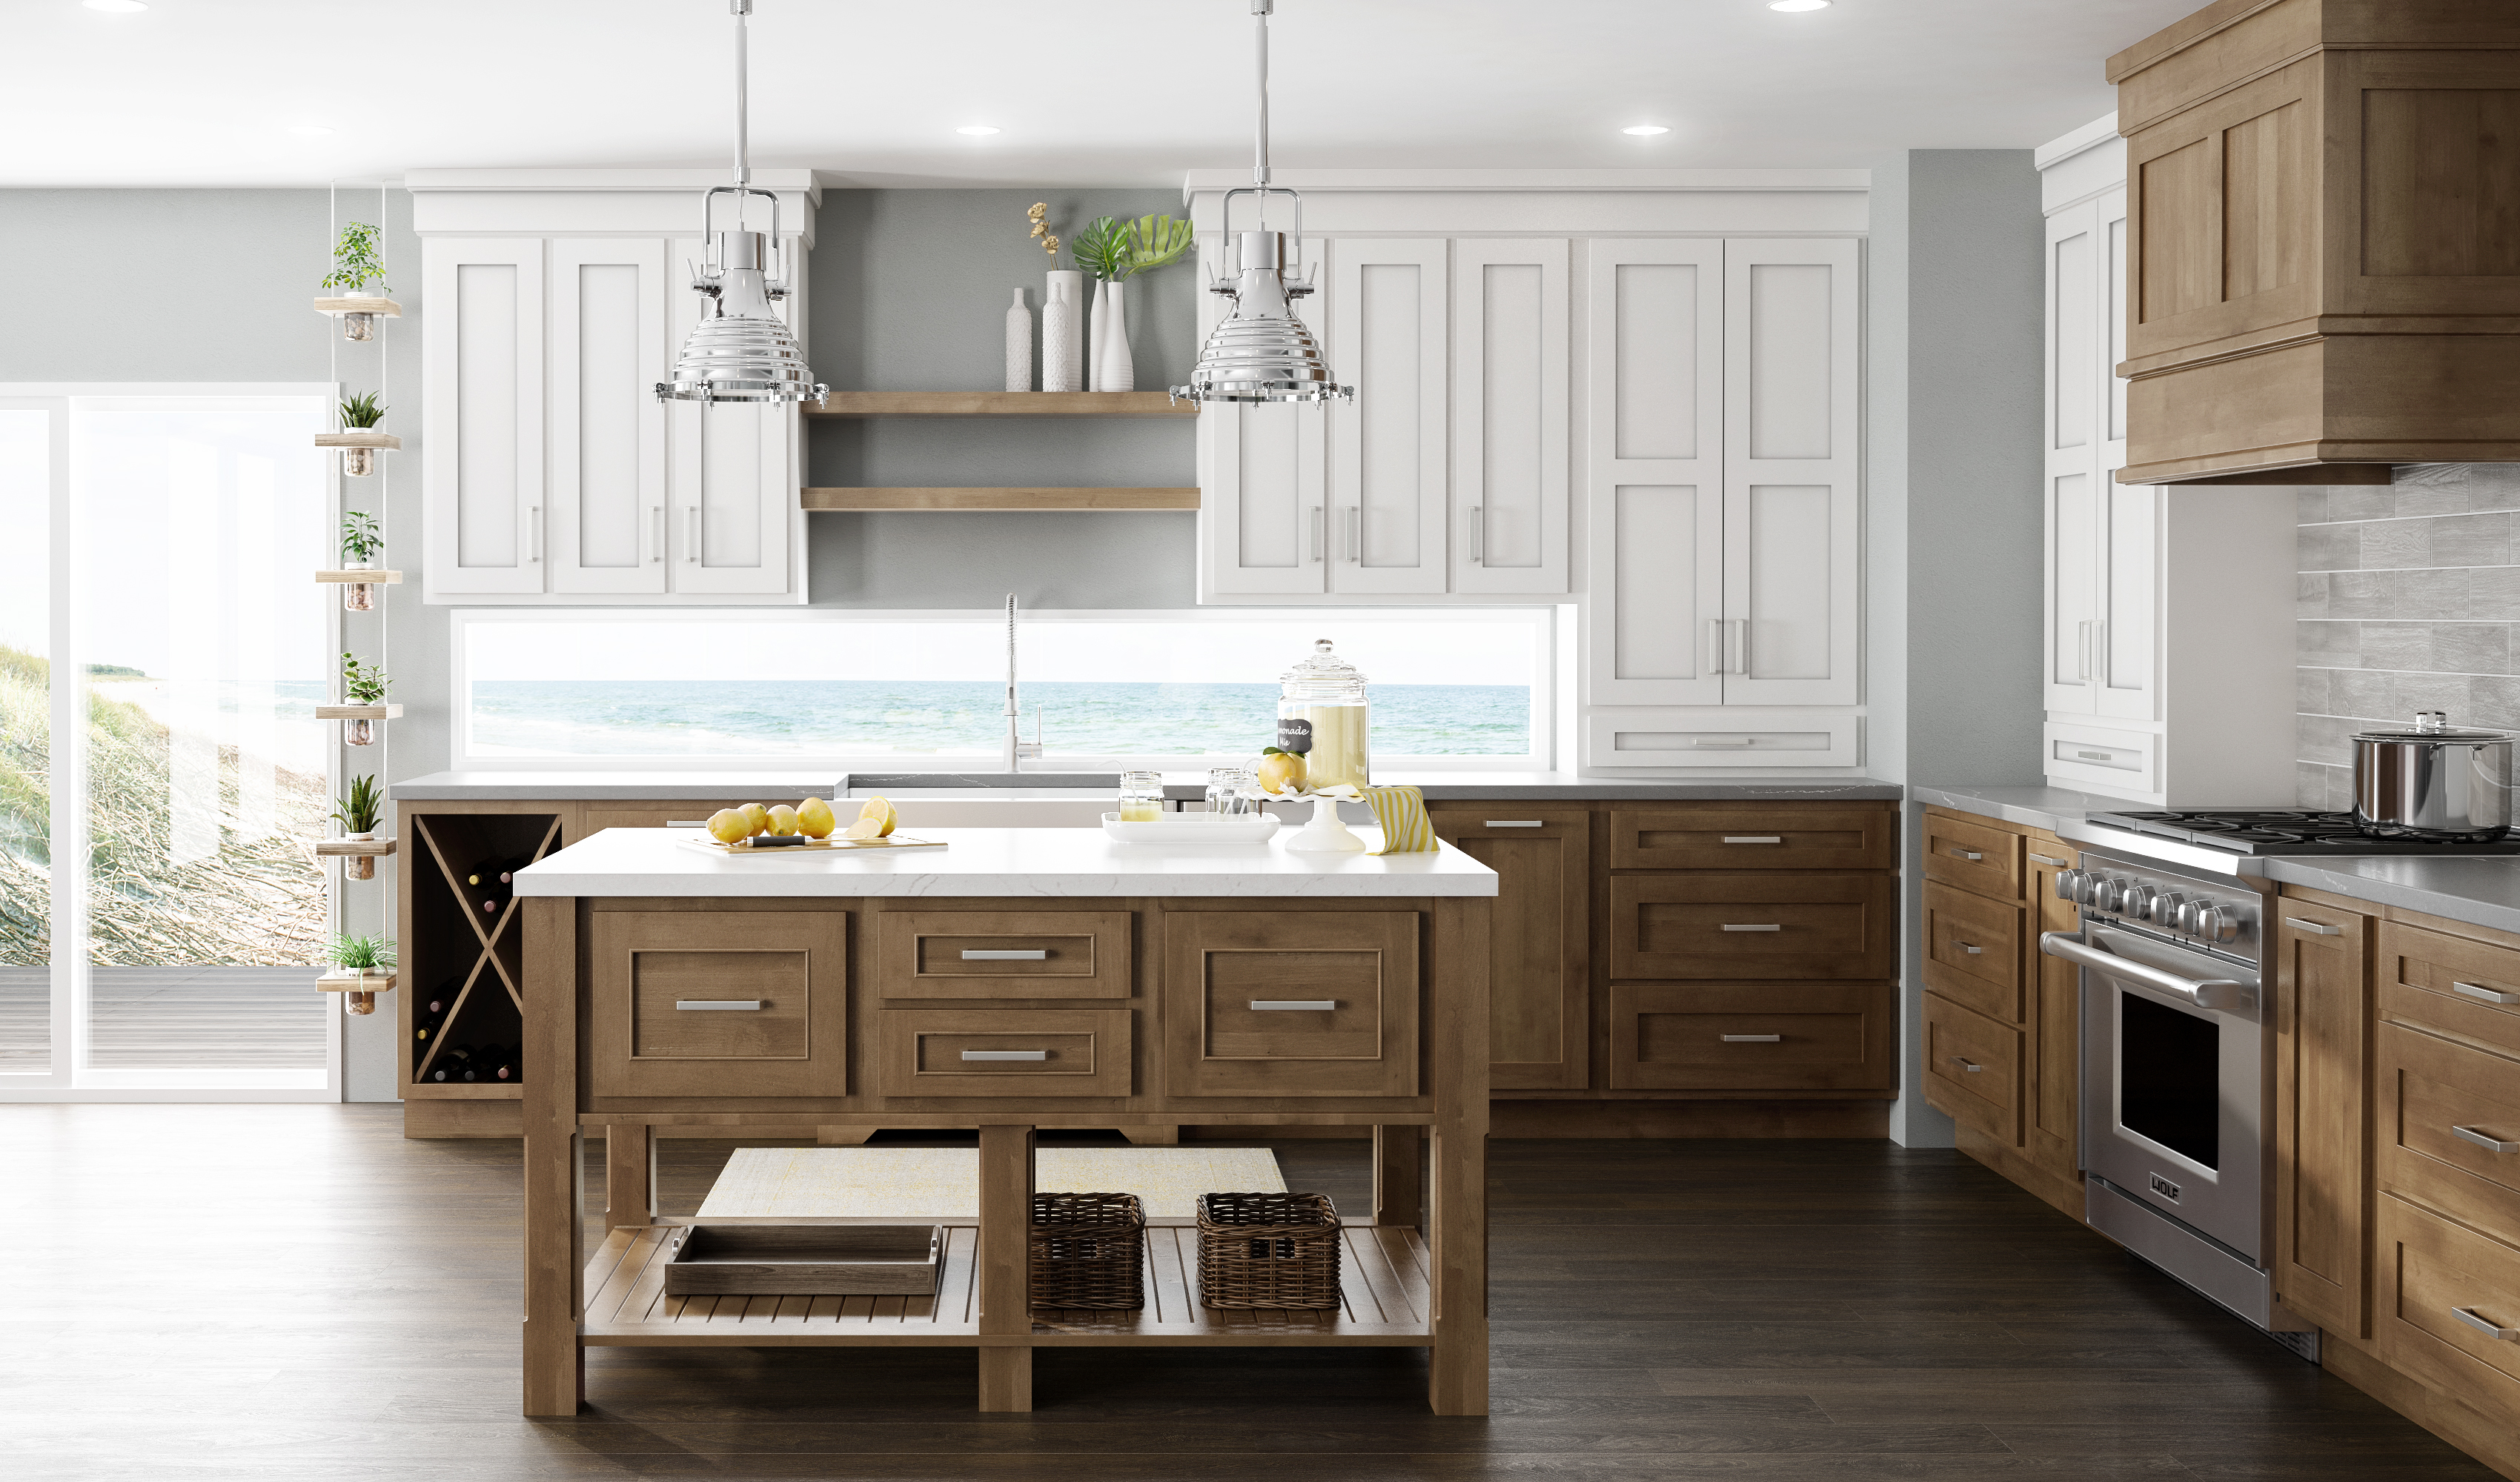 A color palette inspired by nature in a new kitchen remodel featuring Dura Supreme Cabinetry.